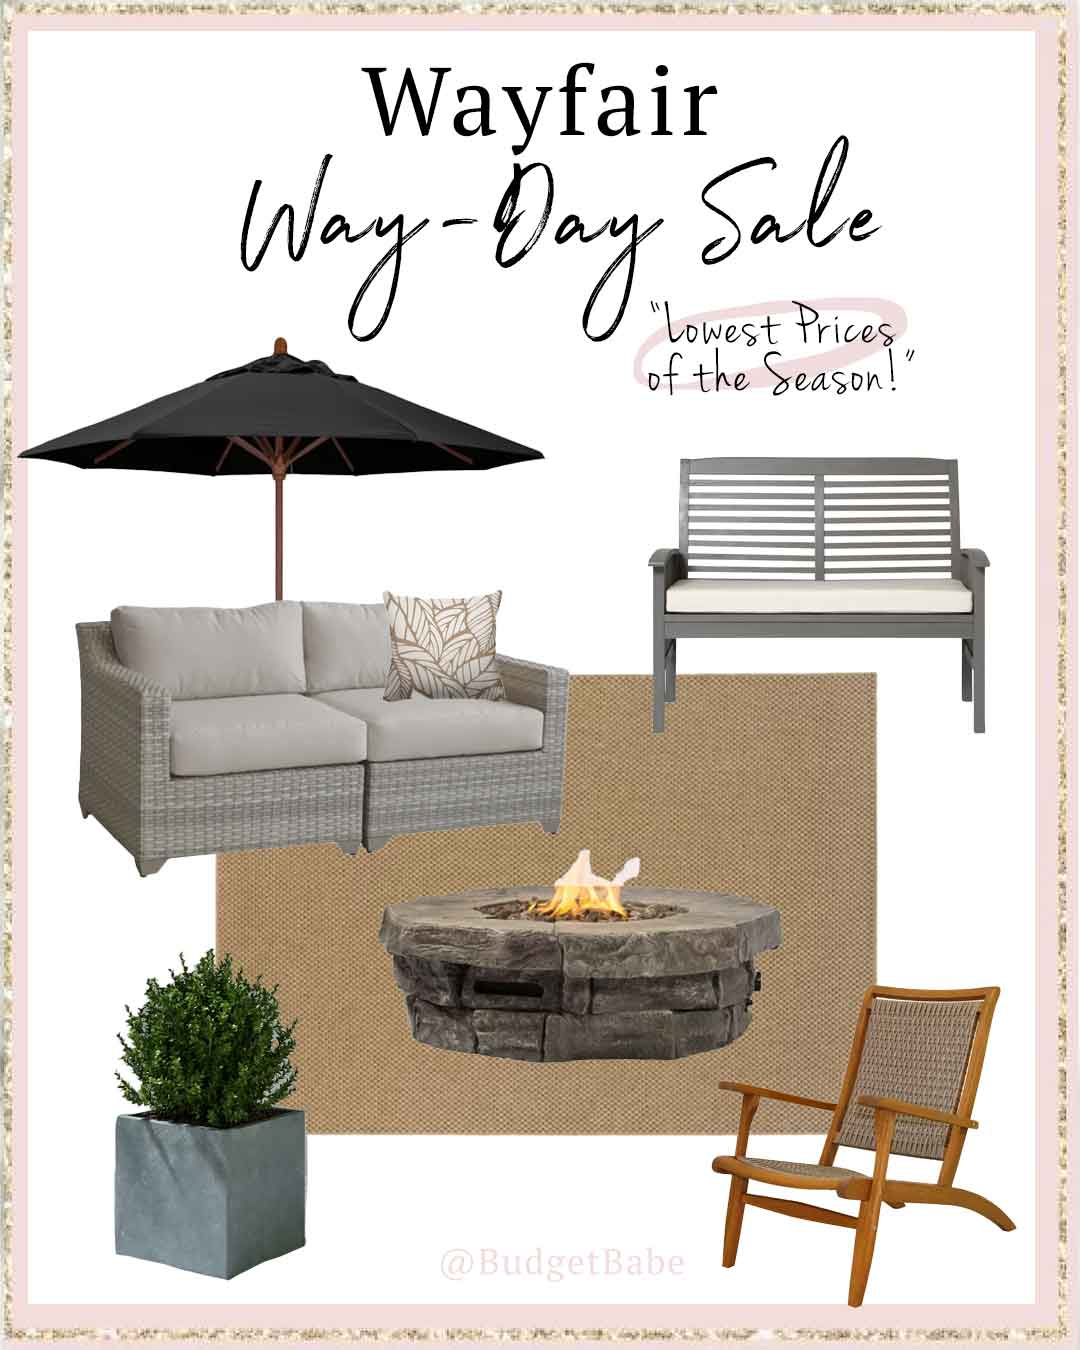 Wayfair's lowest prices of the season! Today only!